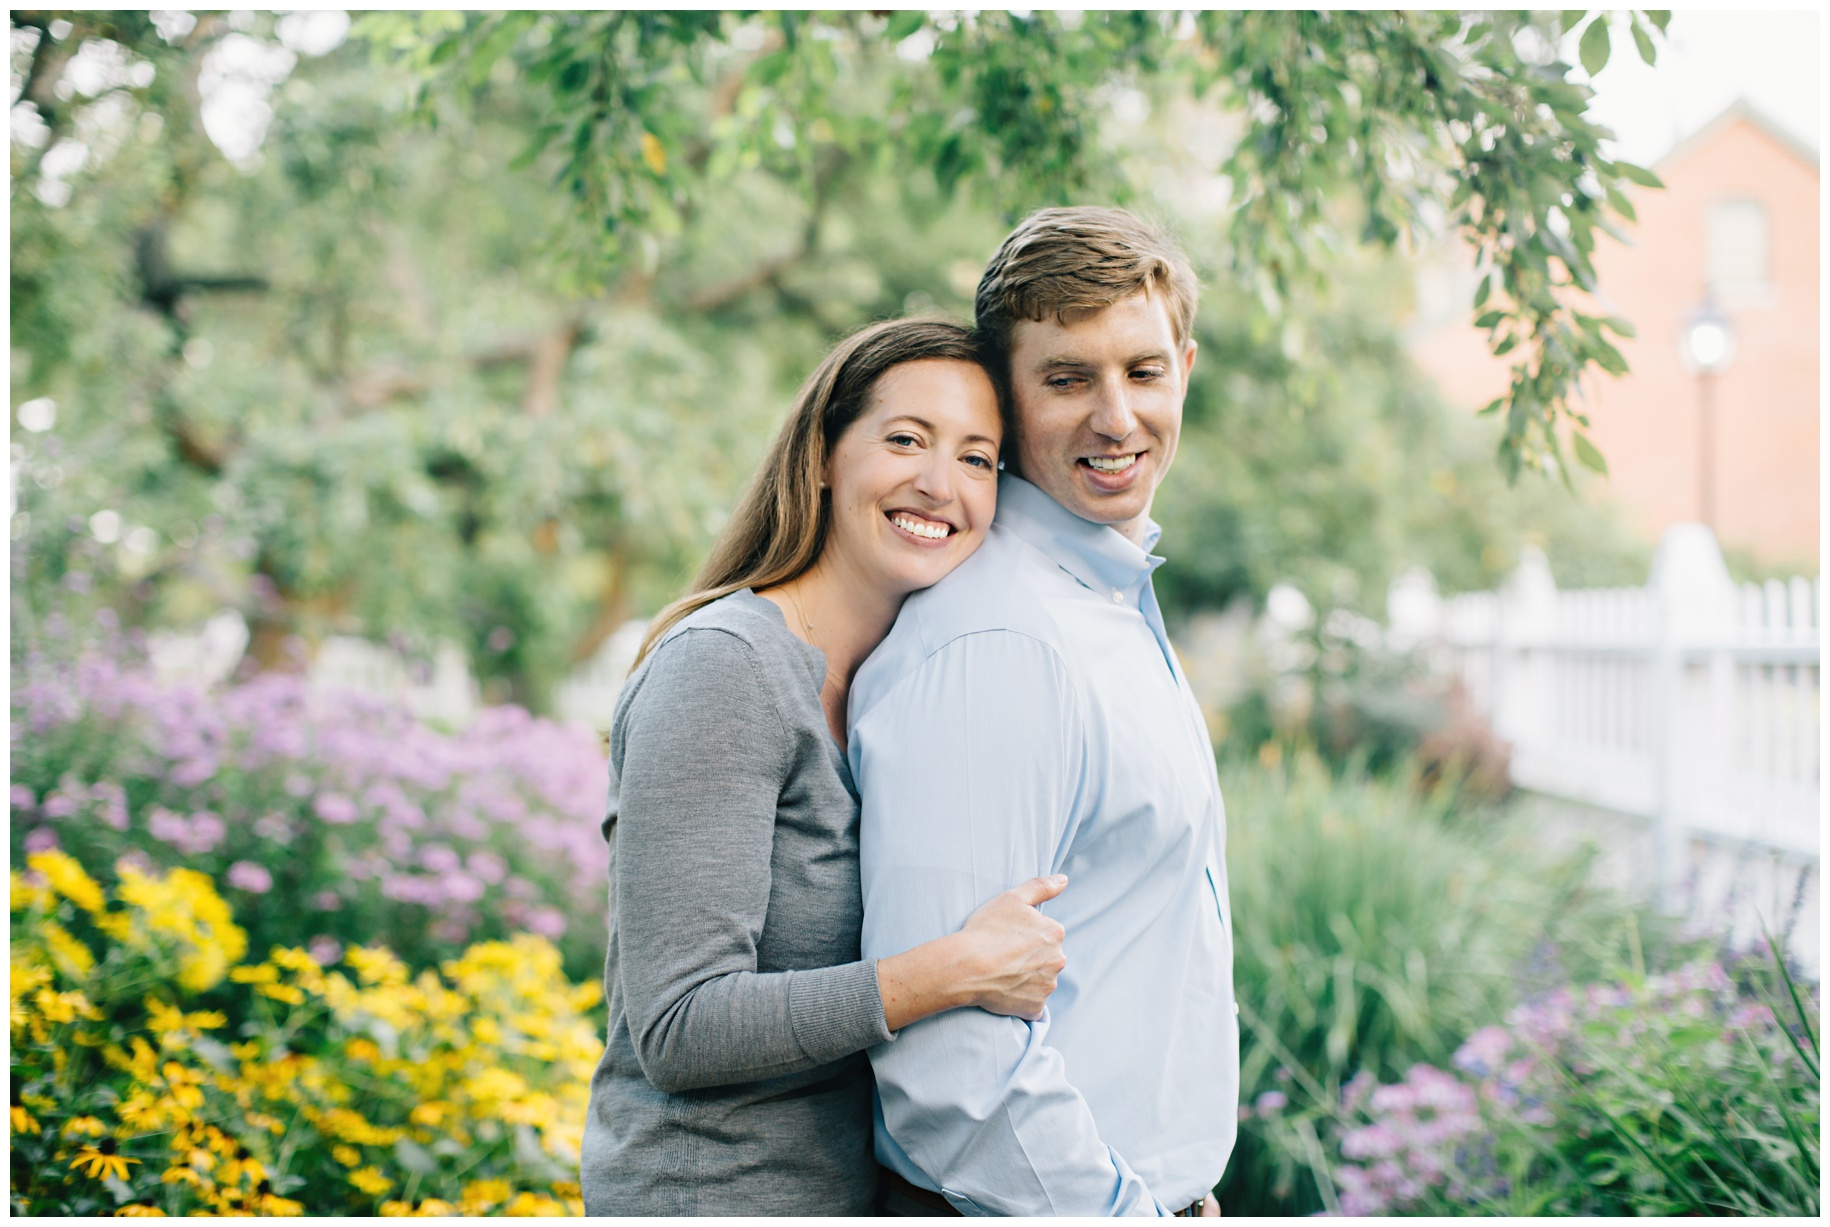 maineweddingphotographer_portsmouth_engagements_newhampshire_newengland-006